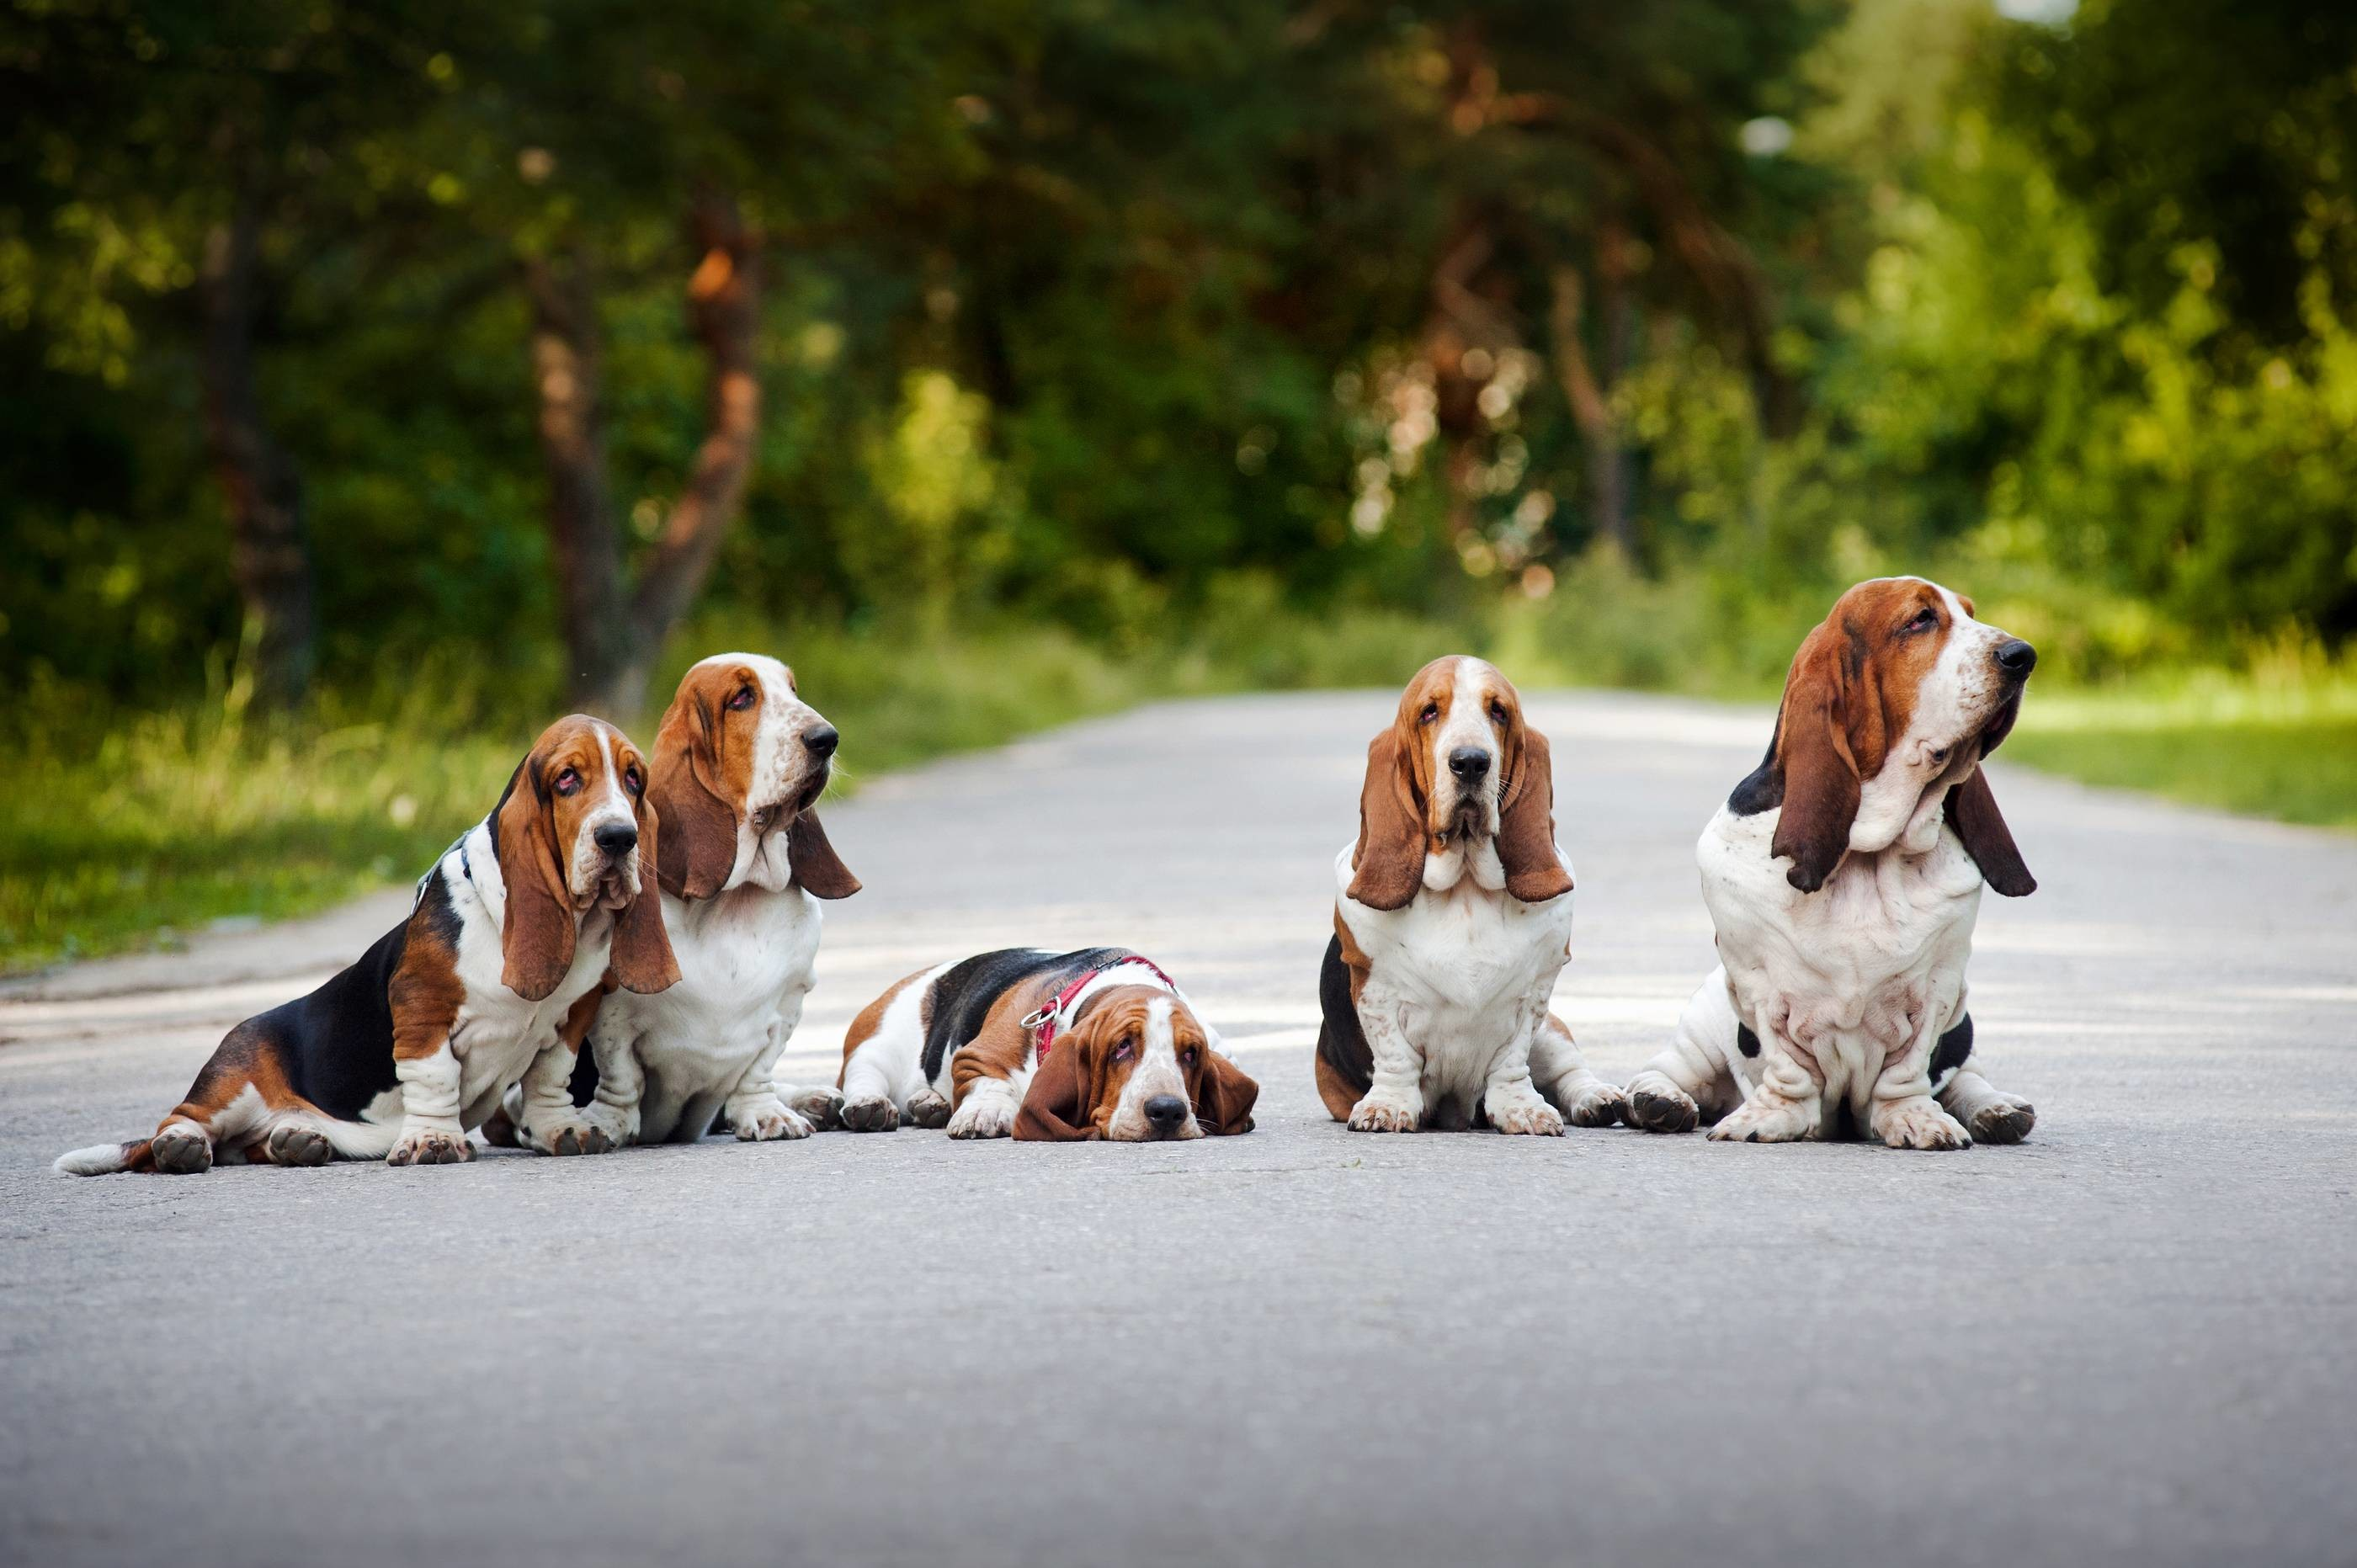 2800x1863 Family Basset Hound sitting on the road wallpapers and images .